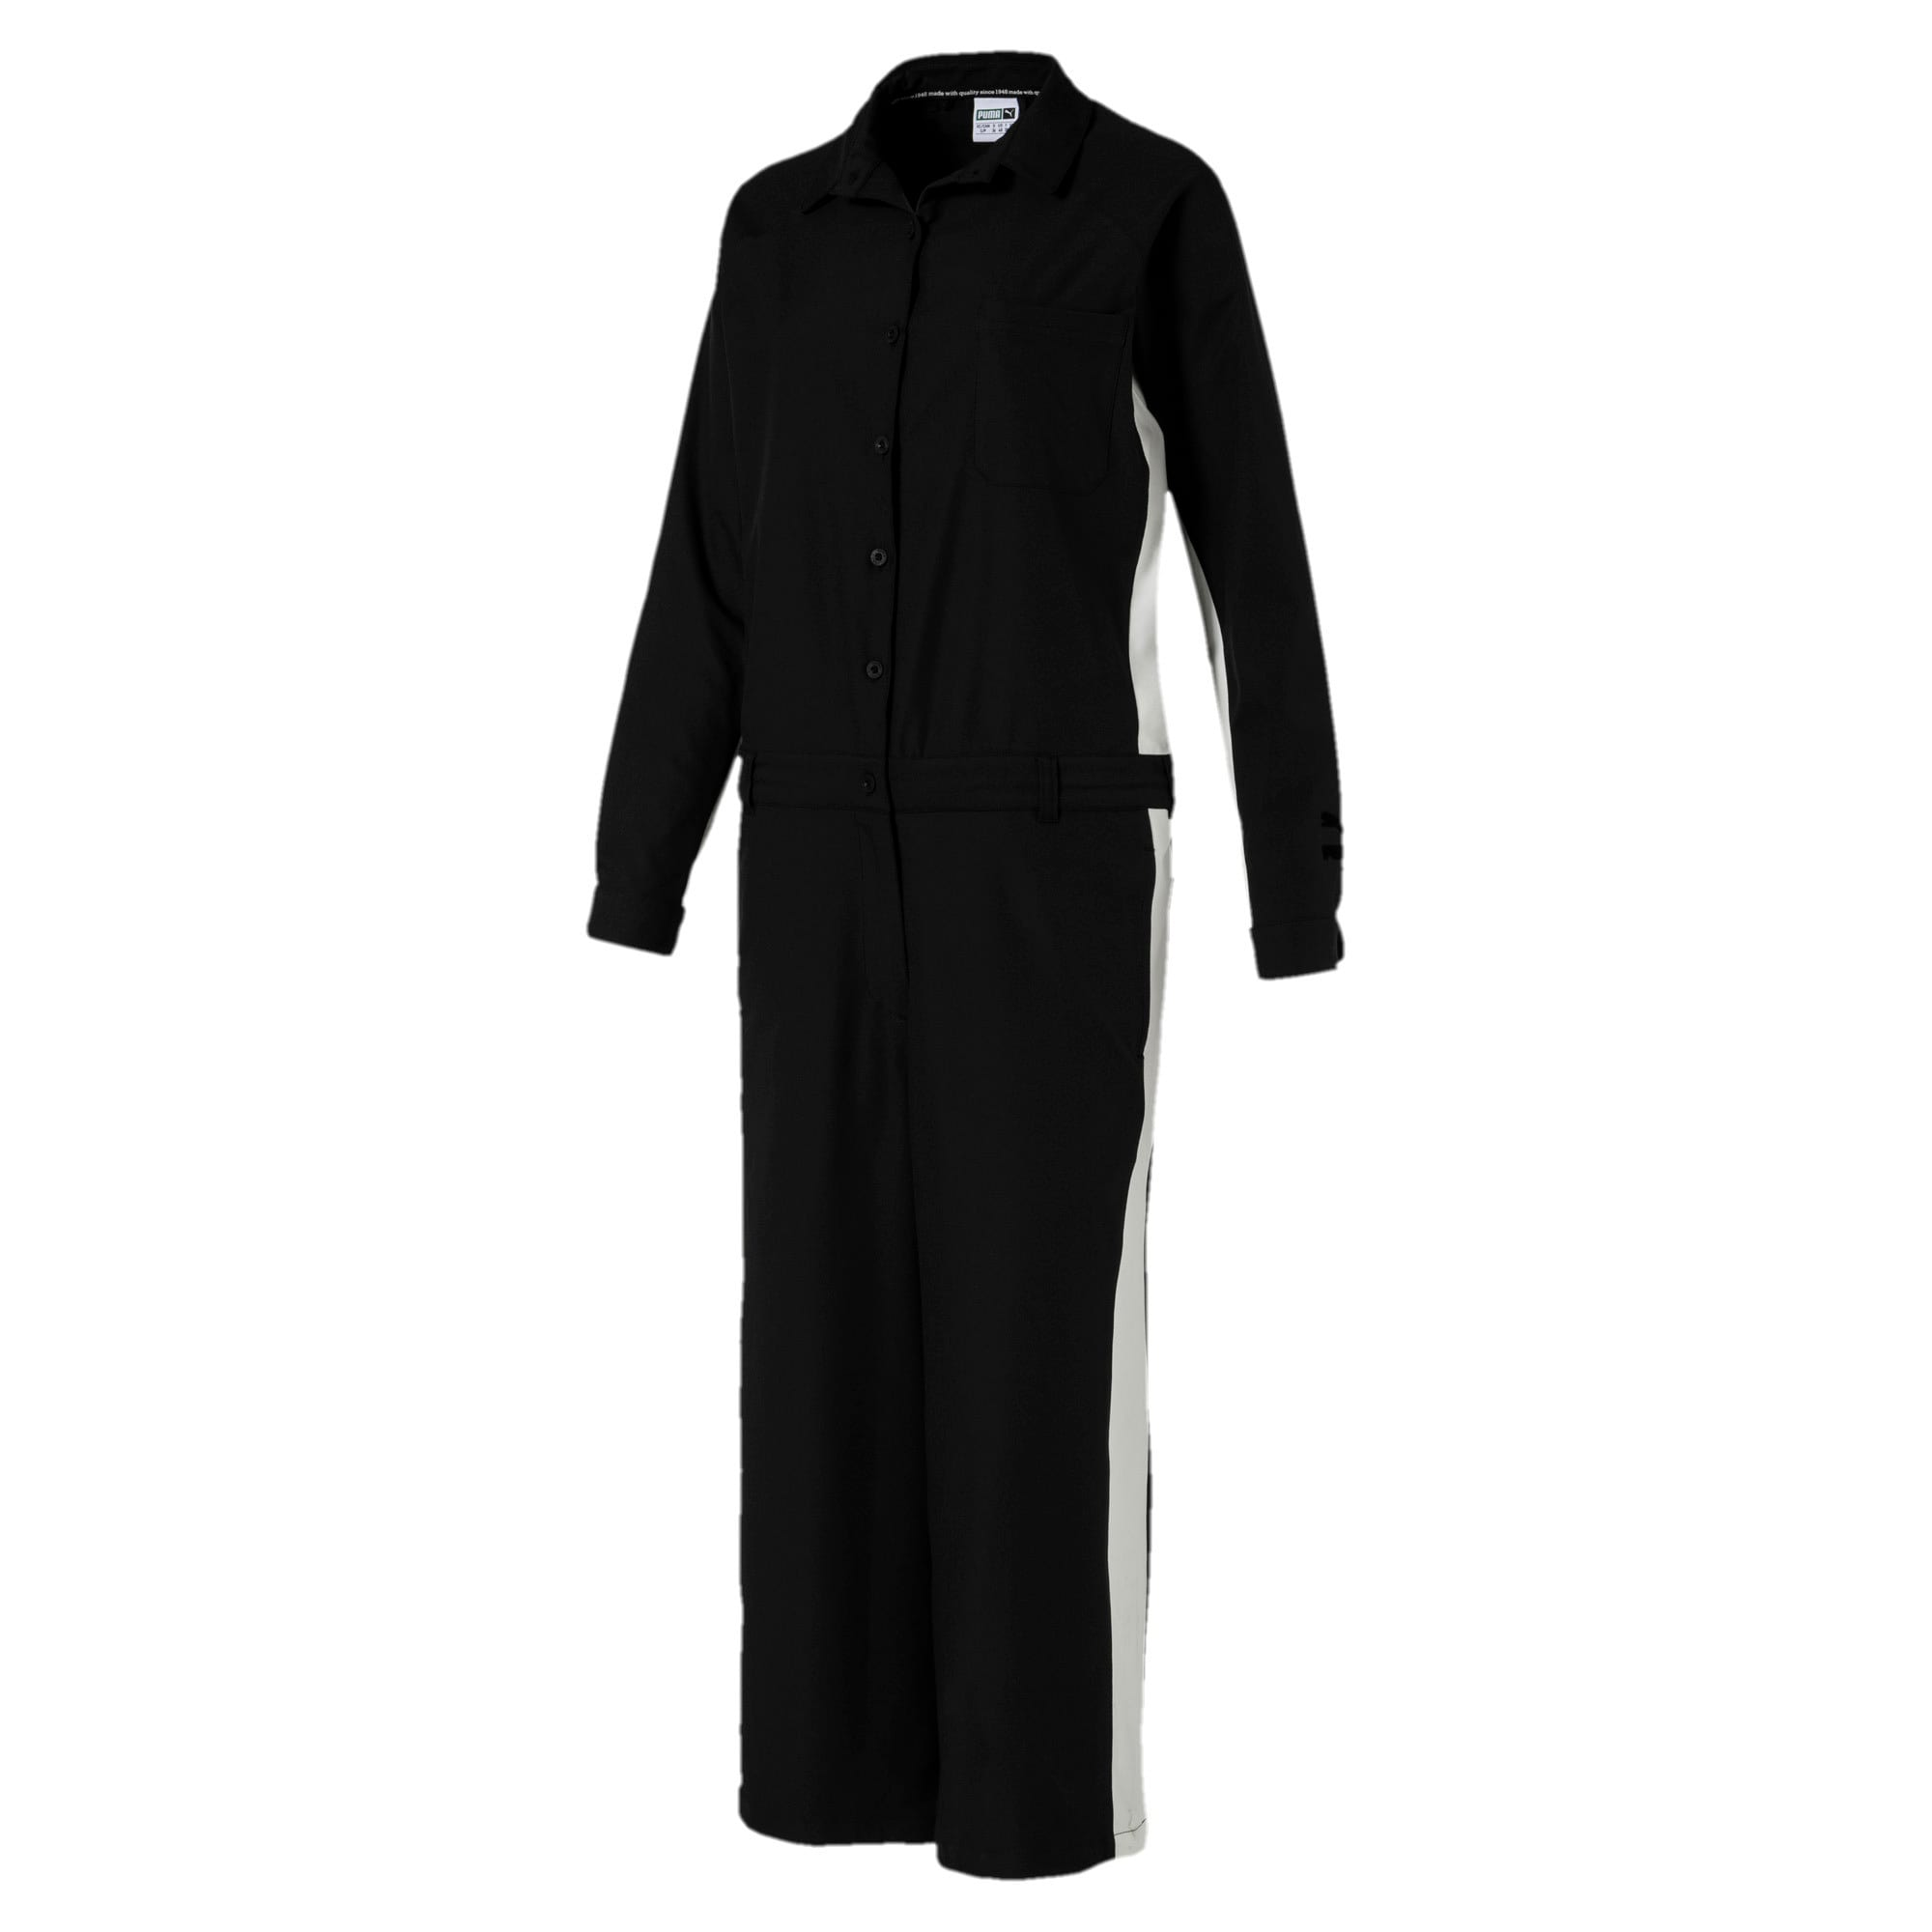 Thumbnail 1 of True Archive Women's Worker Overall, Puma Black, medium-IND